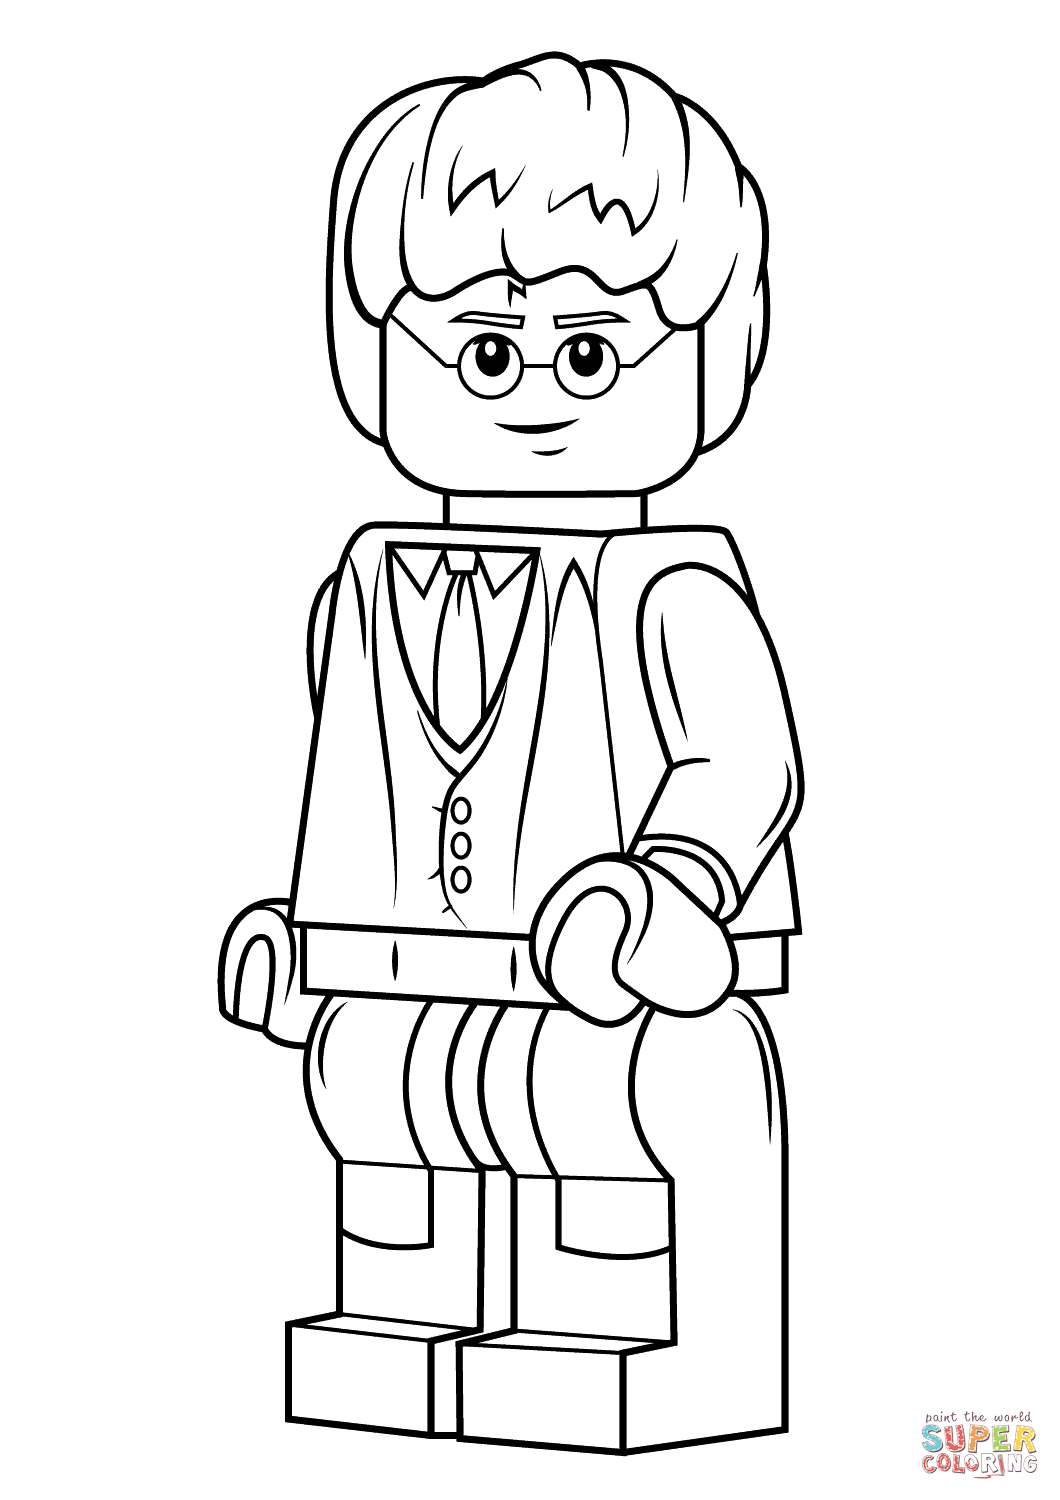 1060x1500 Special Easy Harry Potter Coloring Pages Lego